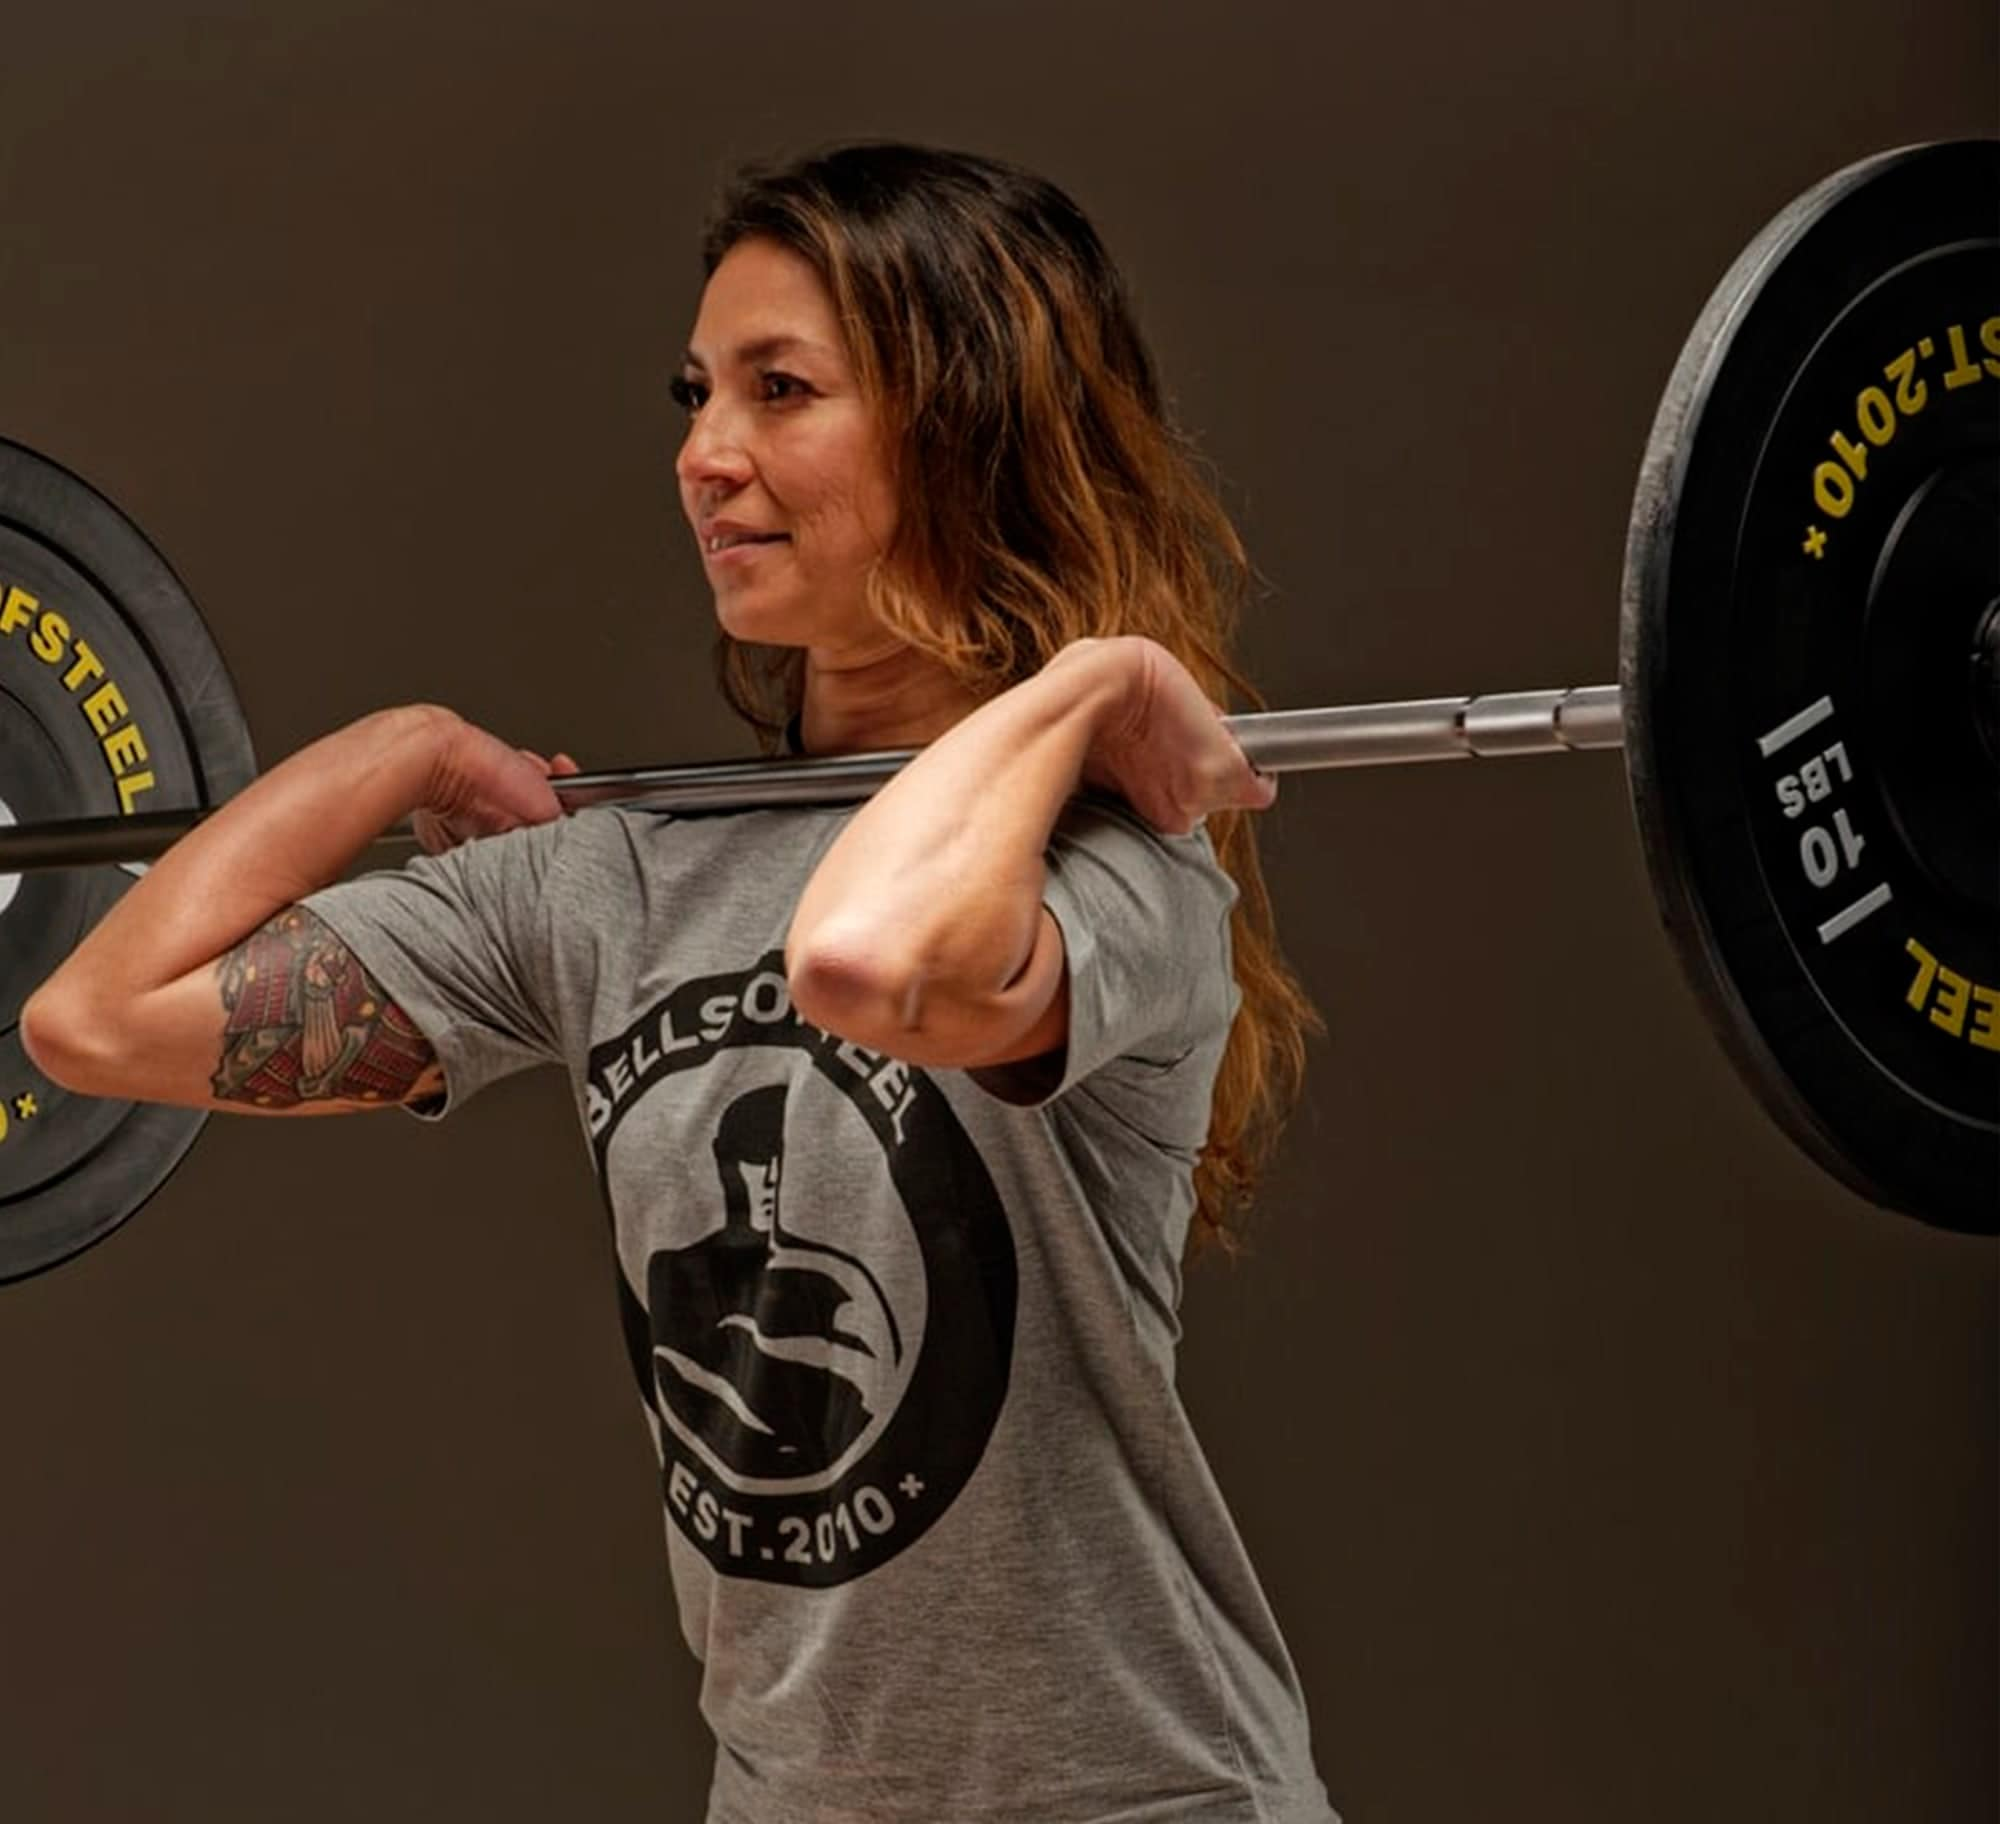 Women's Barbell 2.0 - Olympic Weightlifting By B.o.S.